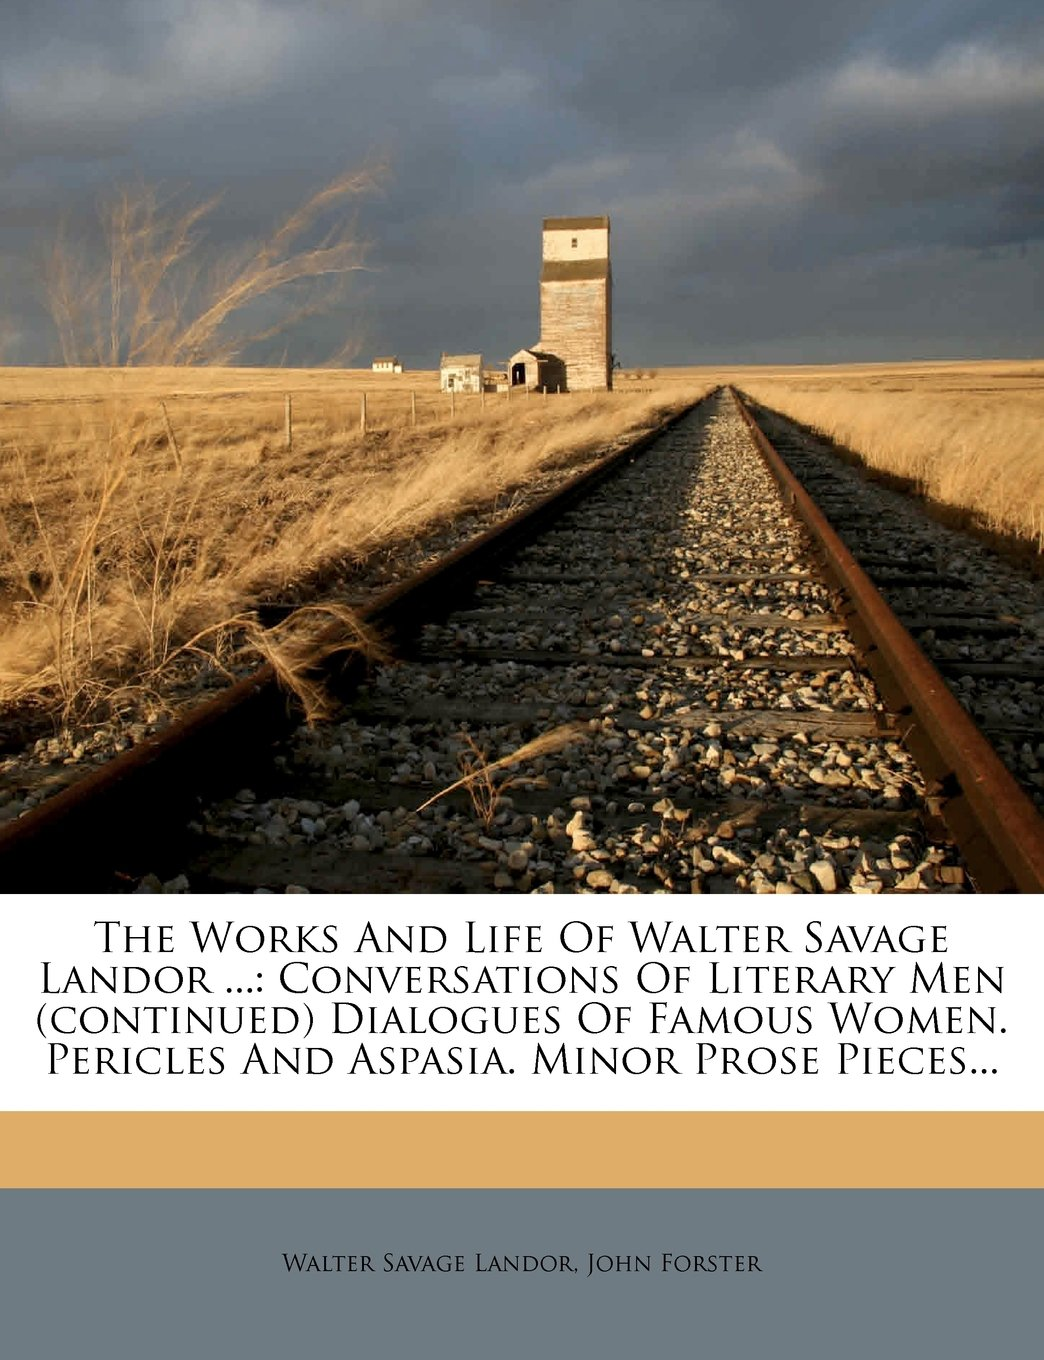 Download The Works And Life Of Walter Savage Landor ...: Conversations Of Literary Men (continued) Dialogues Of Famous Women. Pericles And Aspasia. Minor Prose Pieces... pdf epub